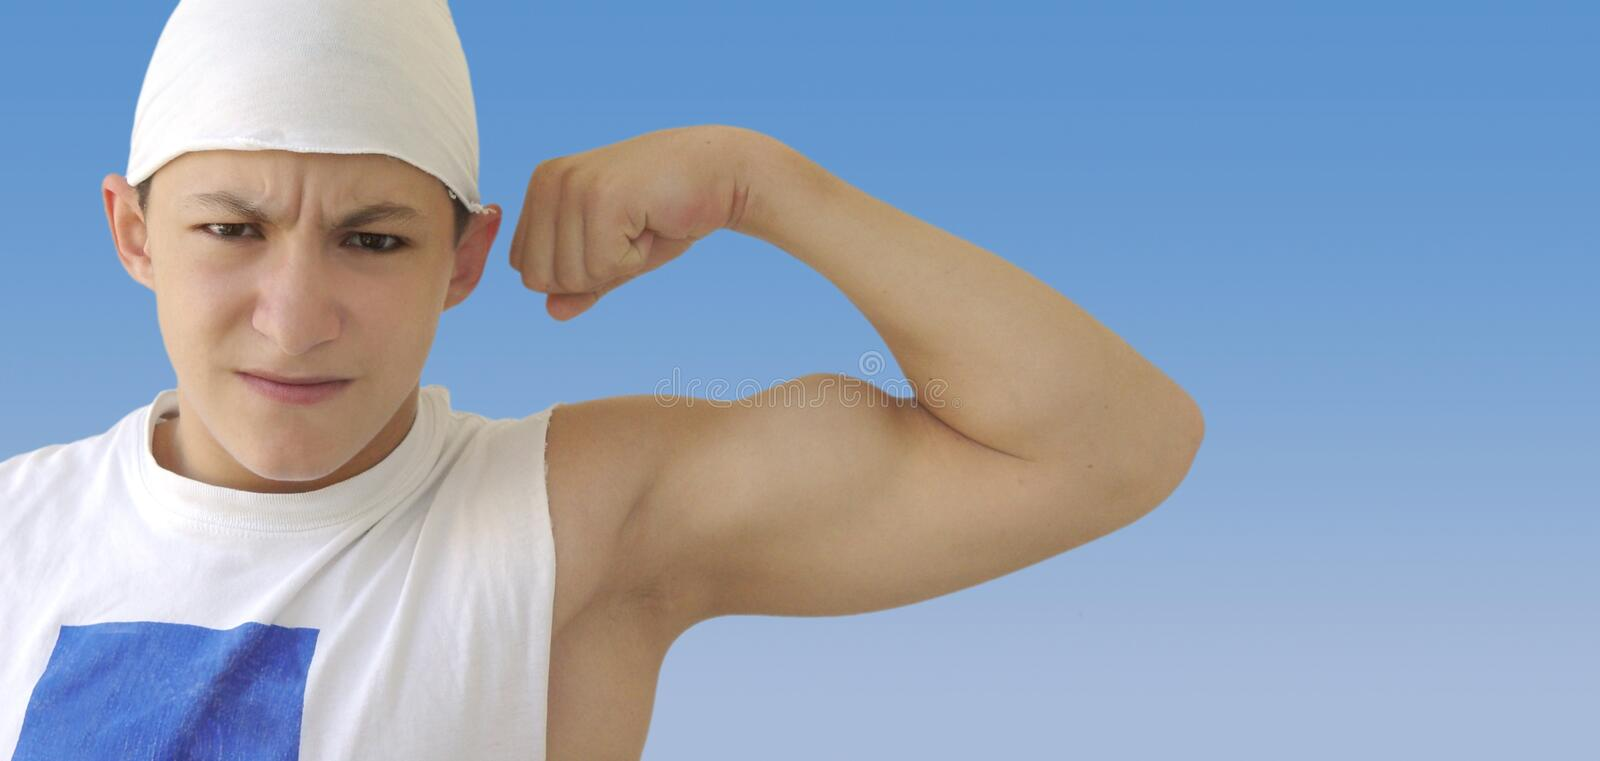 Funny guy with big muscles stock photo